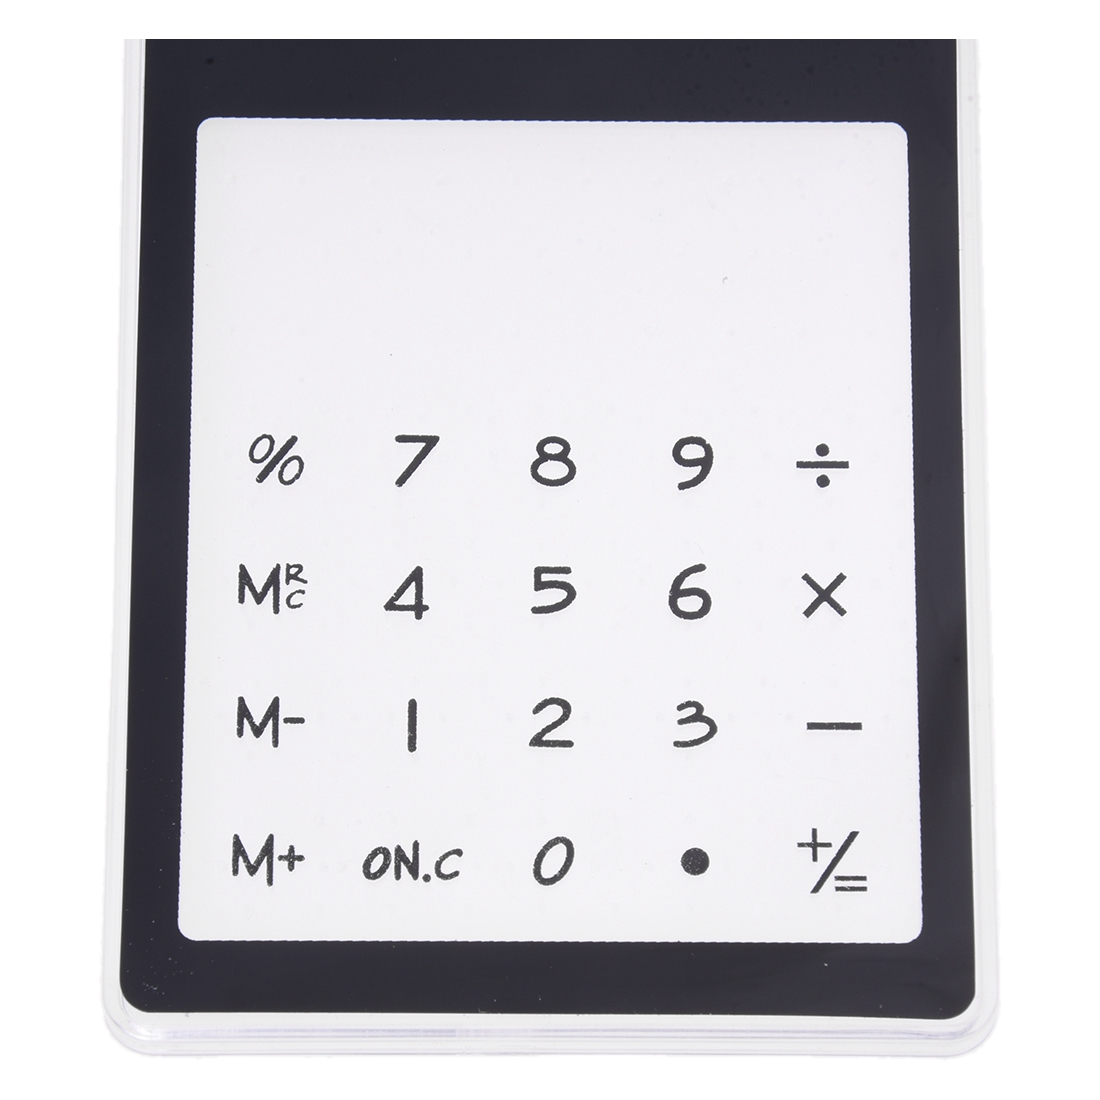 BLEL Hot Desk Solar Transparent Touch Calculator Black 8 Figures